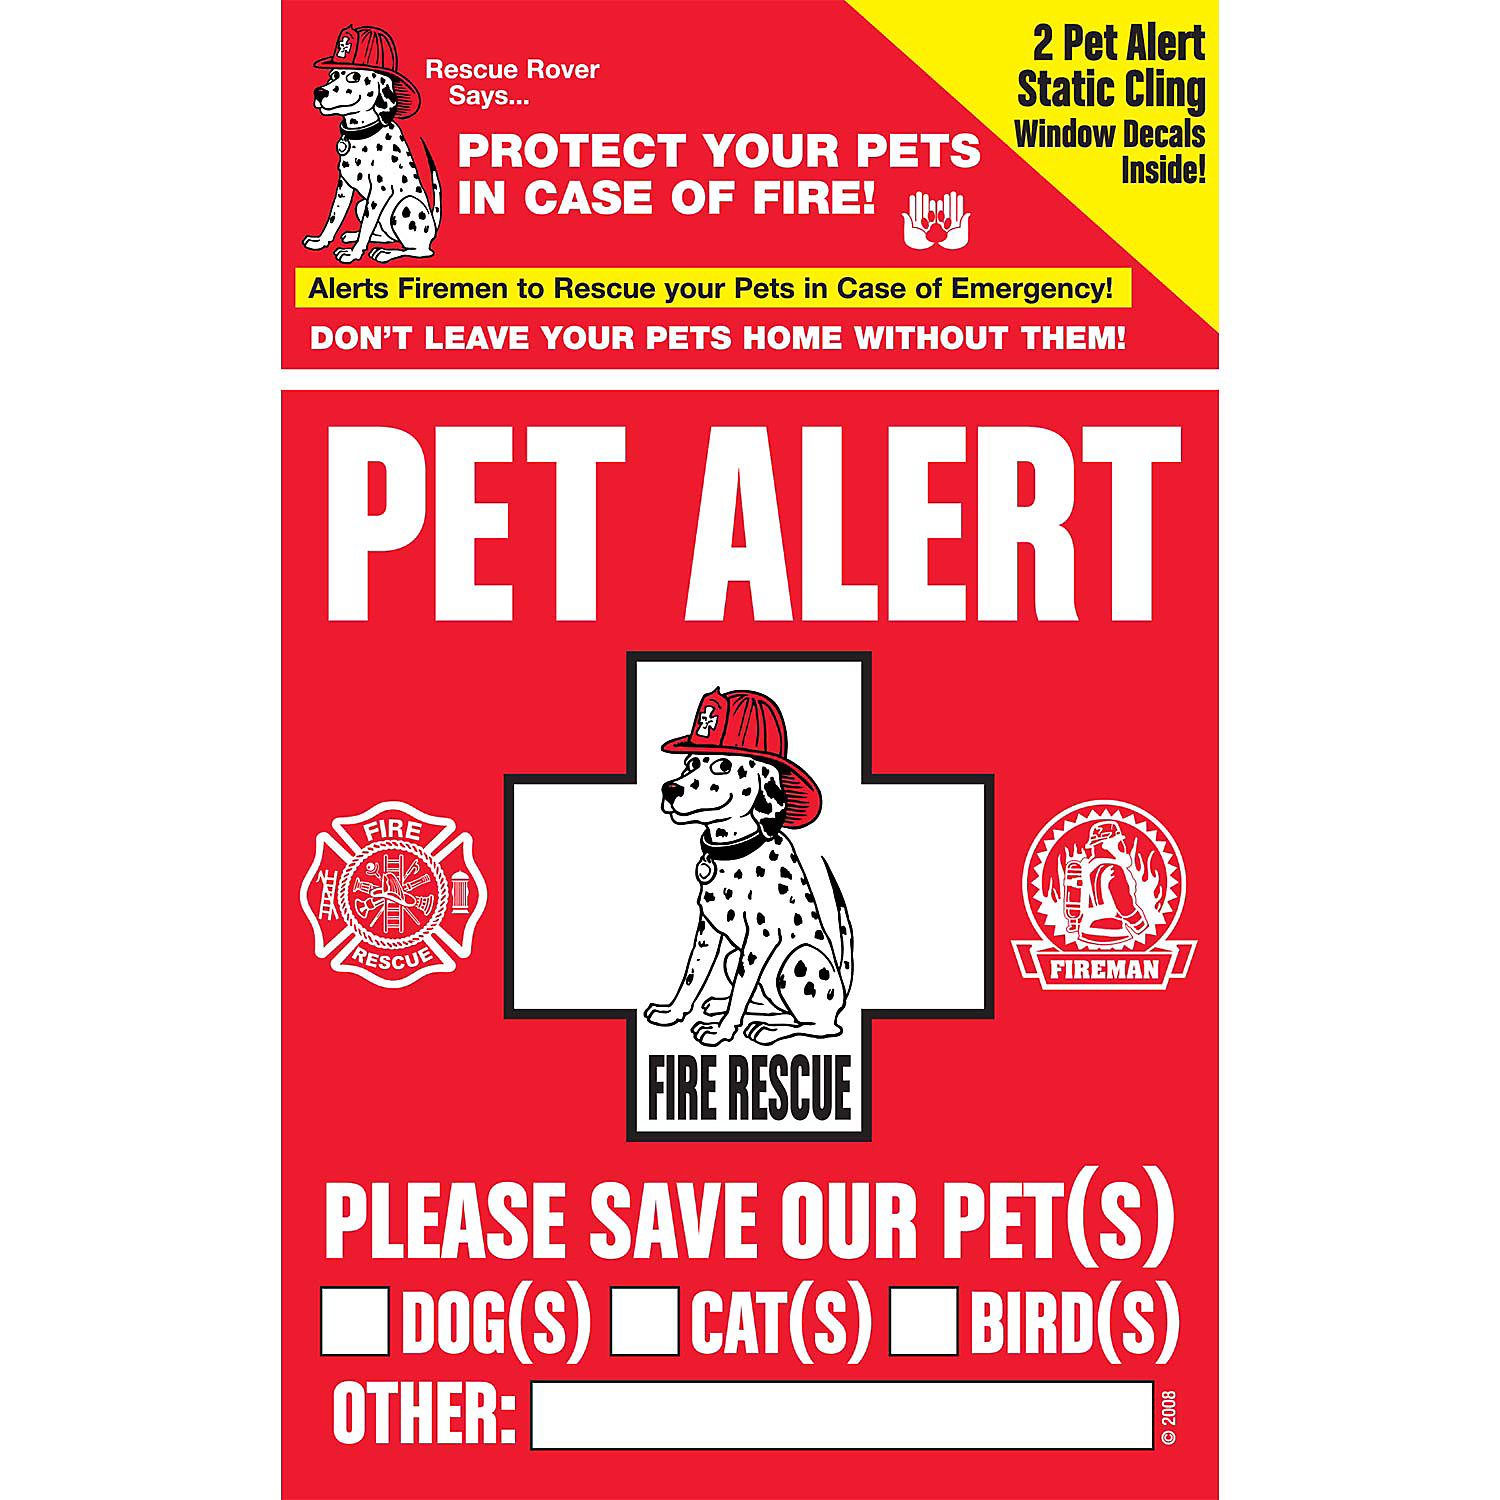 Pet Safety Alert Rescue Rover Pet Alert Fire Rescue Decals Pack Of 2 Decals 4 W X 5 H